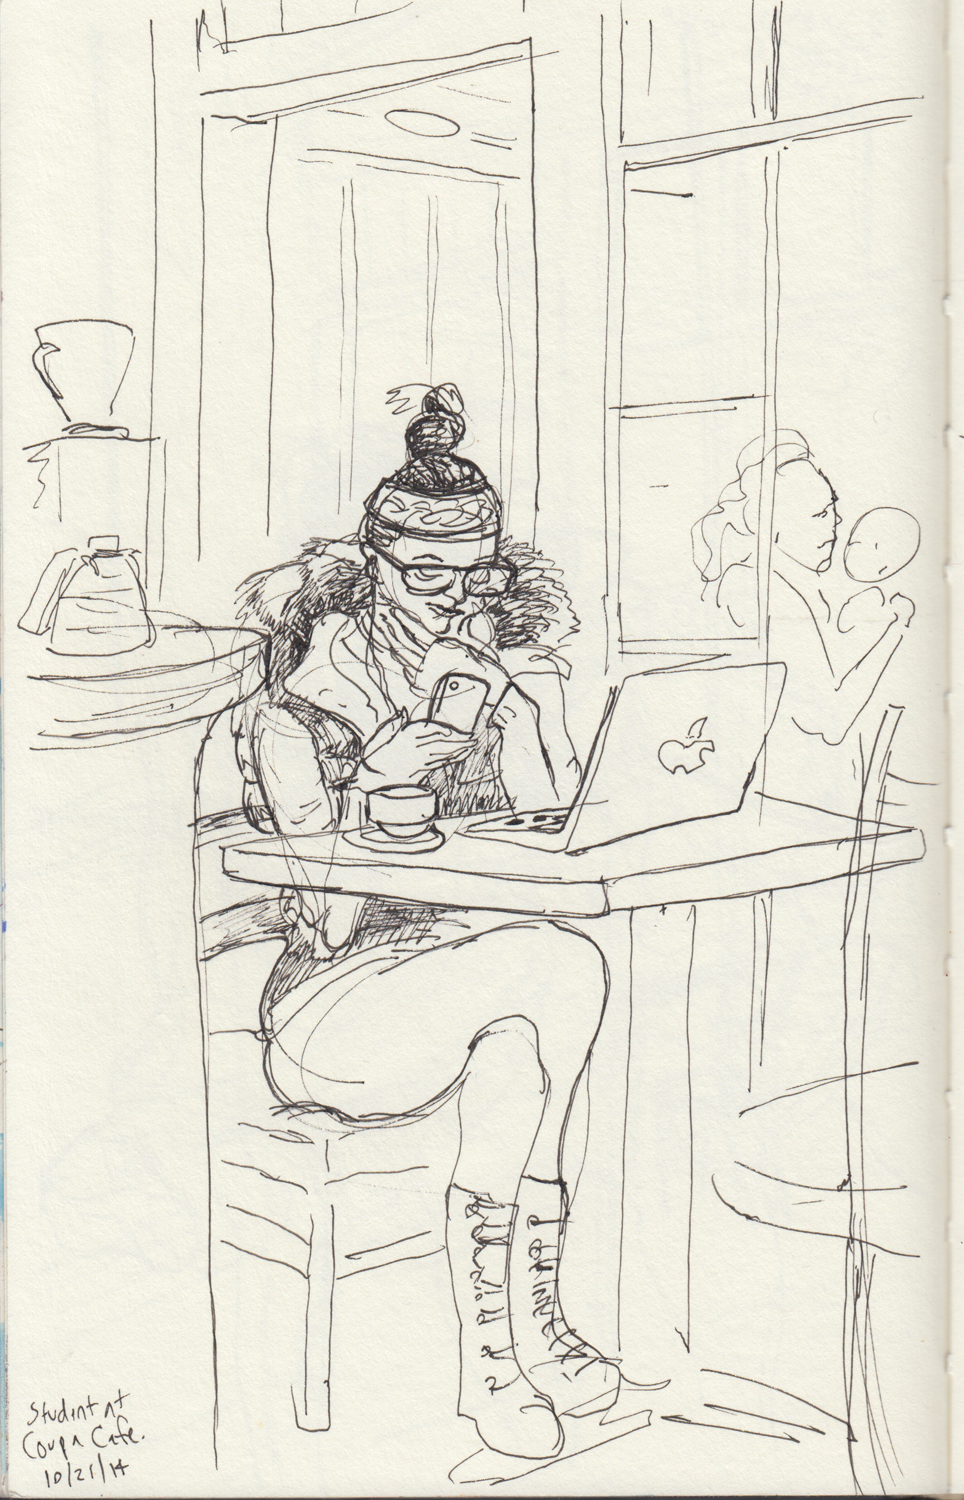 2014 - 10 - 21 - sketchbook - woman at coupa.jpg